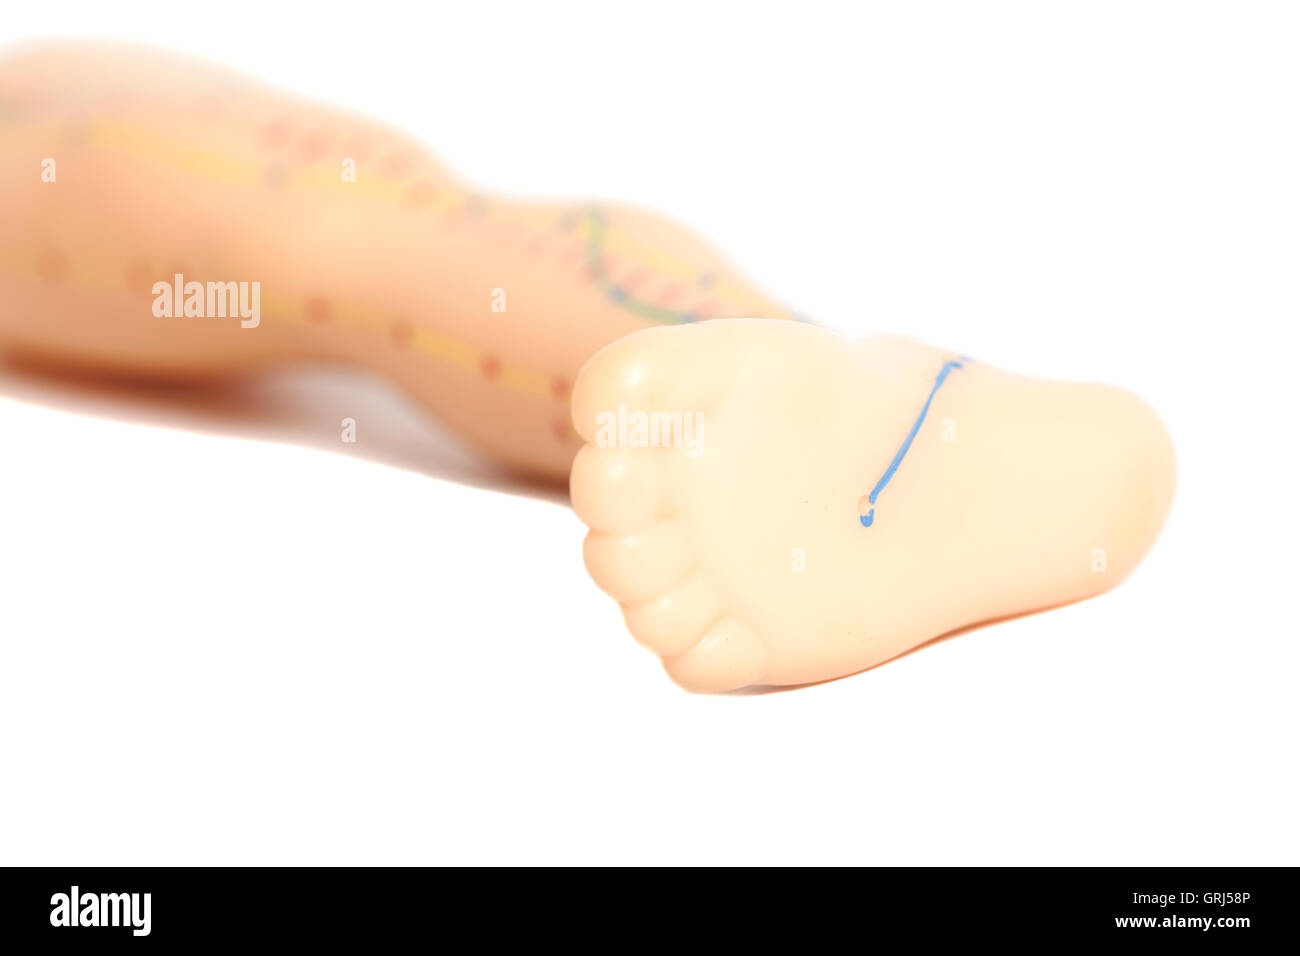 Medical acupuncture model of human feet isolated on white - Stock Image